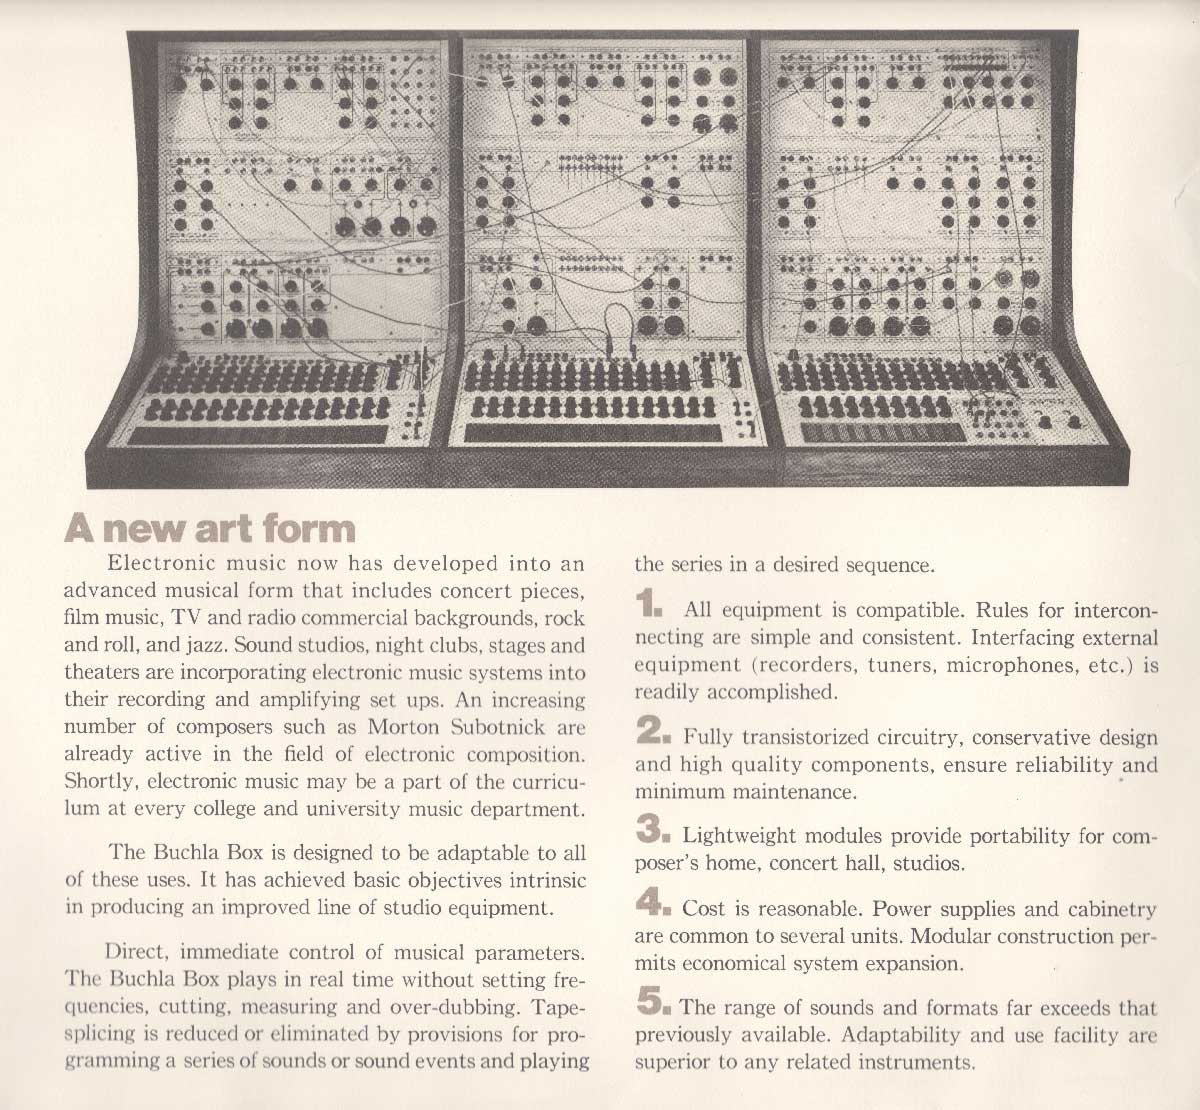 History Buchla Speech Recognition Interface Modules Circuit Sound Synthesisers Dons Inventions Are In Widespread Use By Film Composers Performance Artists Jazz Musicians Pop And Rock Improvisational Ensemblesin